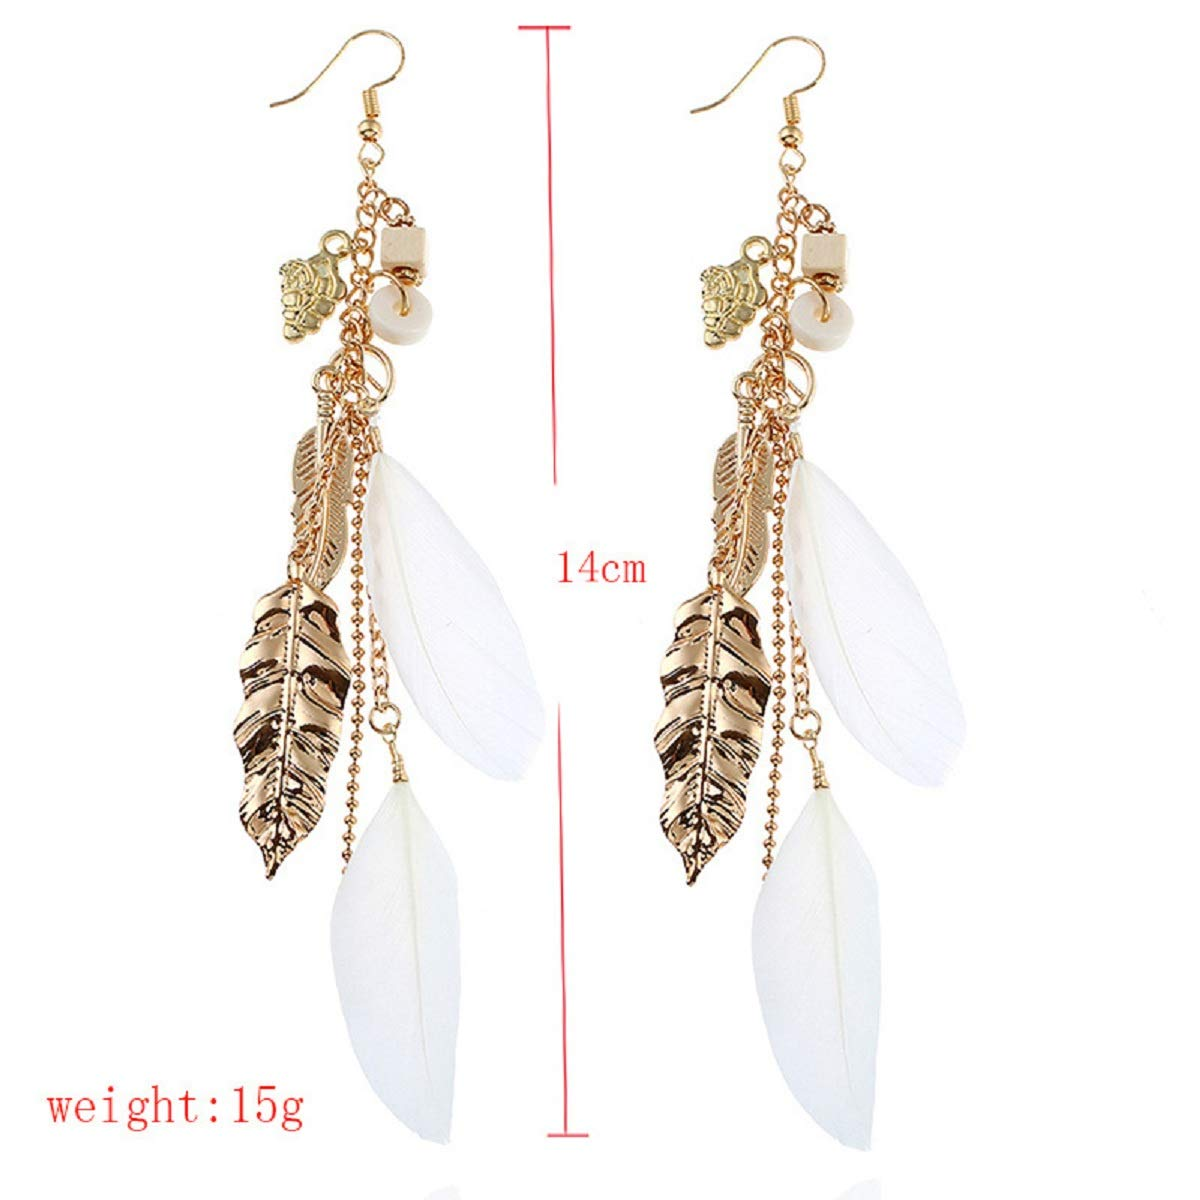 Feather Tassel Great Gifts for Women Girls JXVLUYE Colors Earring for Women Girls Fashion Simple Style Earring